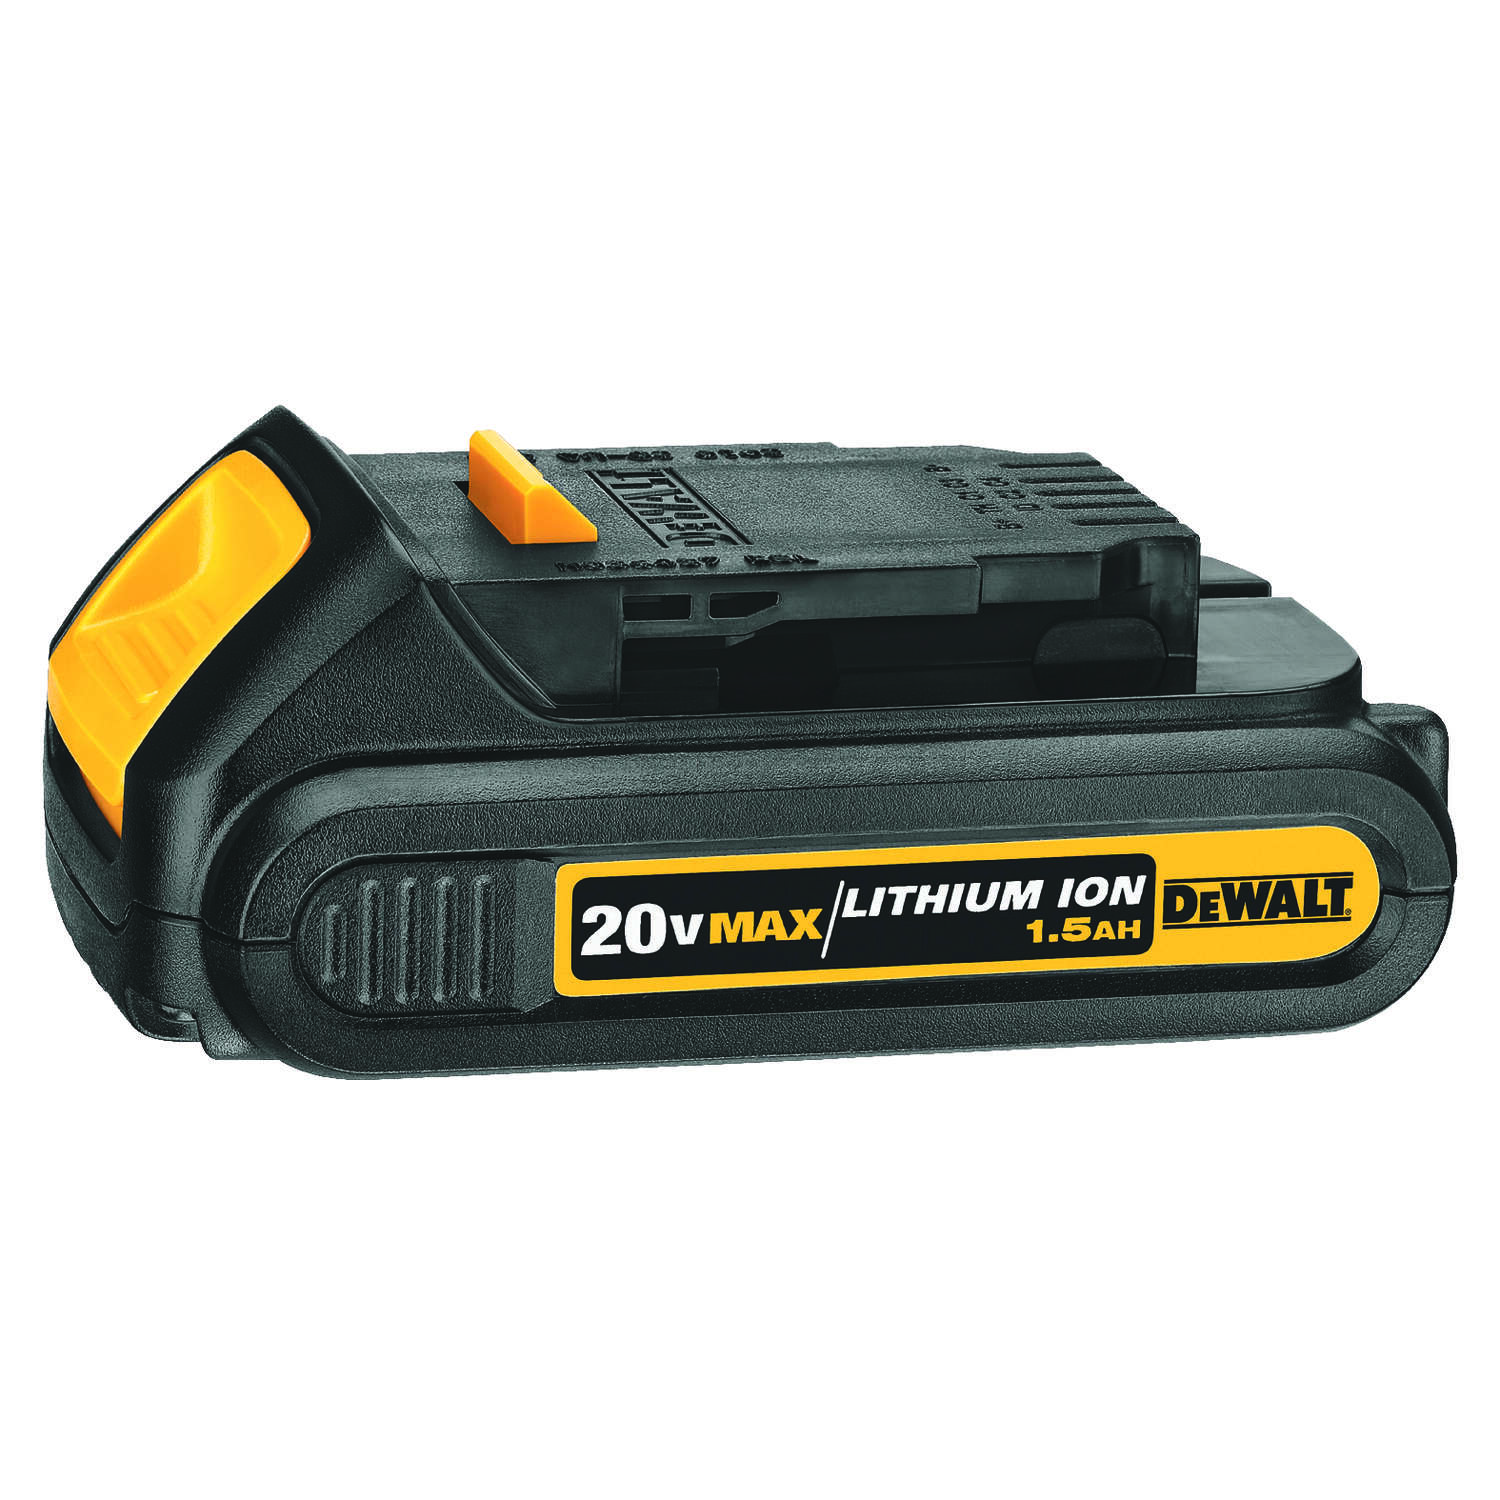 DeWalt  20 volt 1.5 Ah Lithium-Ion  Compact Battery Pack  1 pc.